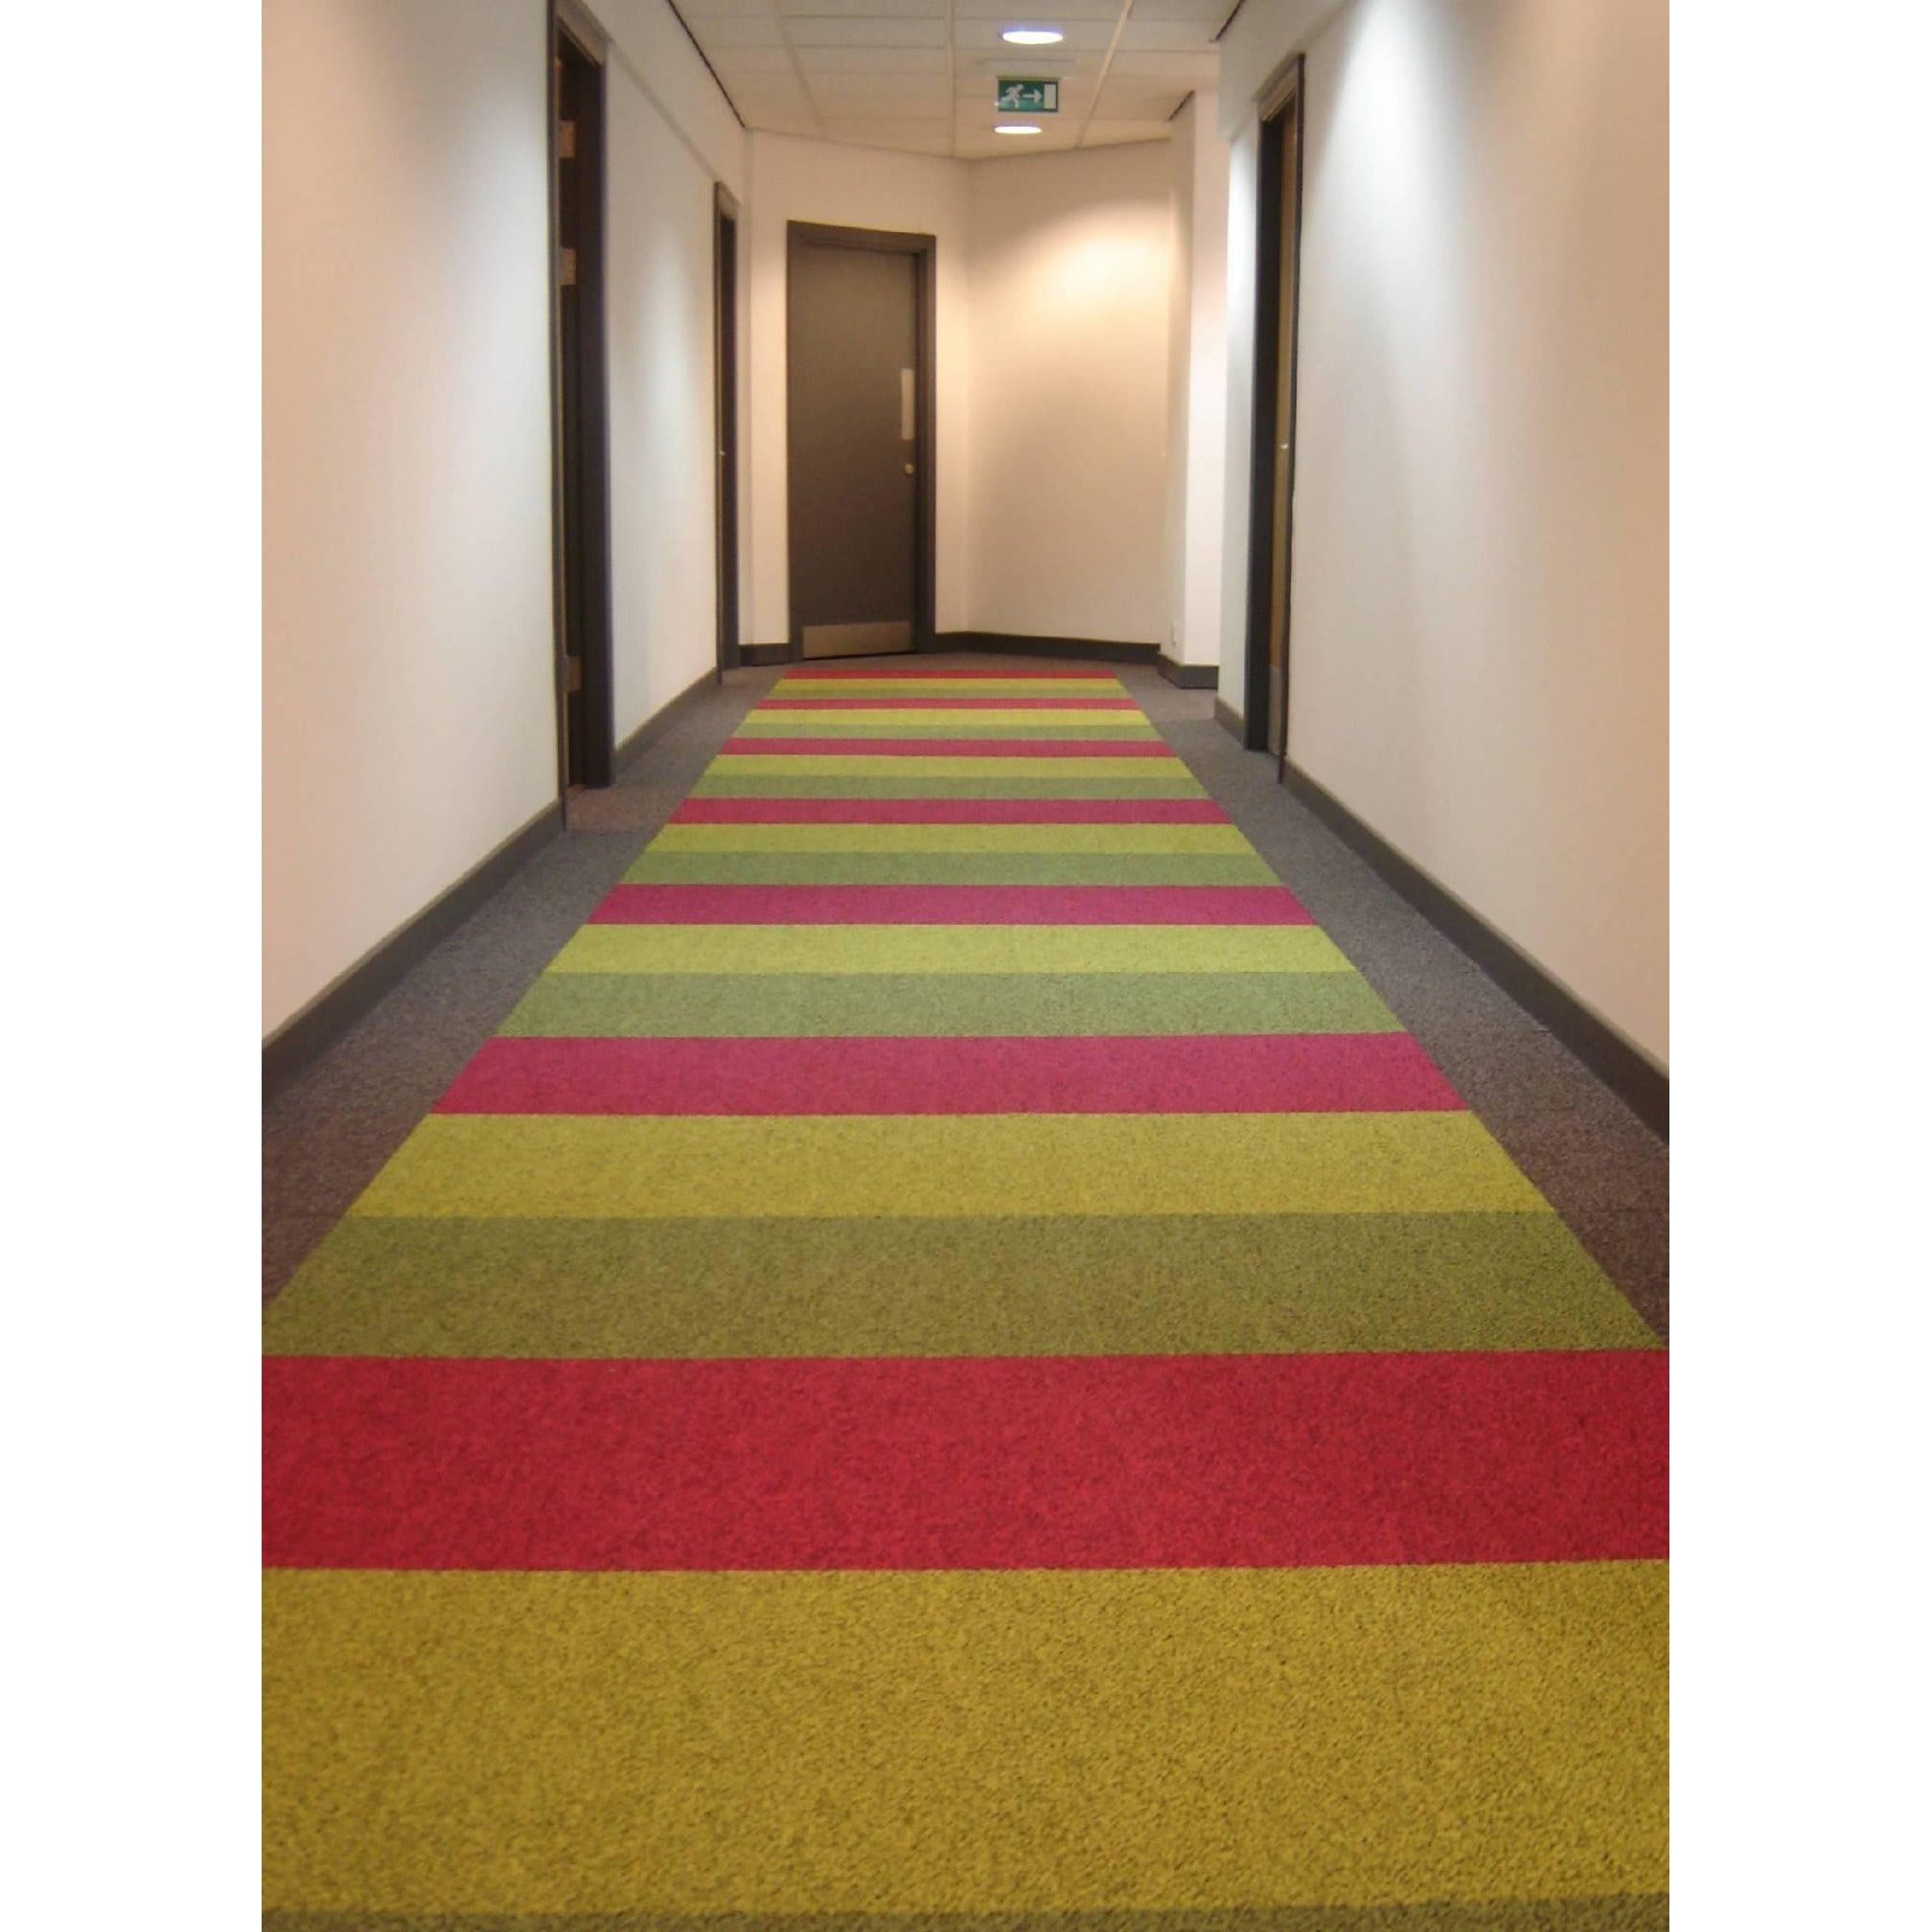 Flooring Sale Glasgow: SALE AND LAYING OF CARPETS, FLOOR